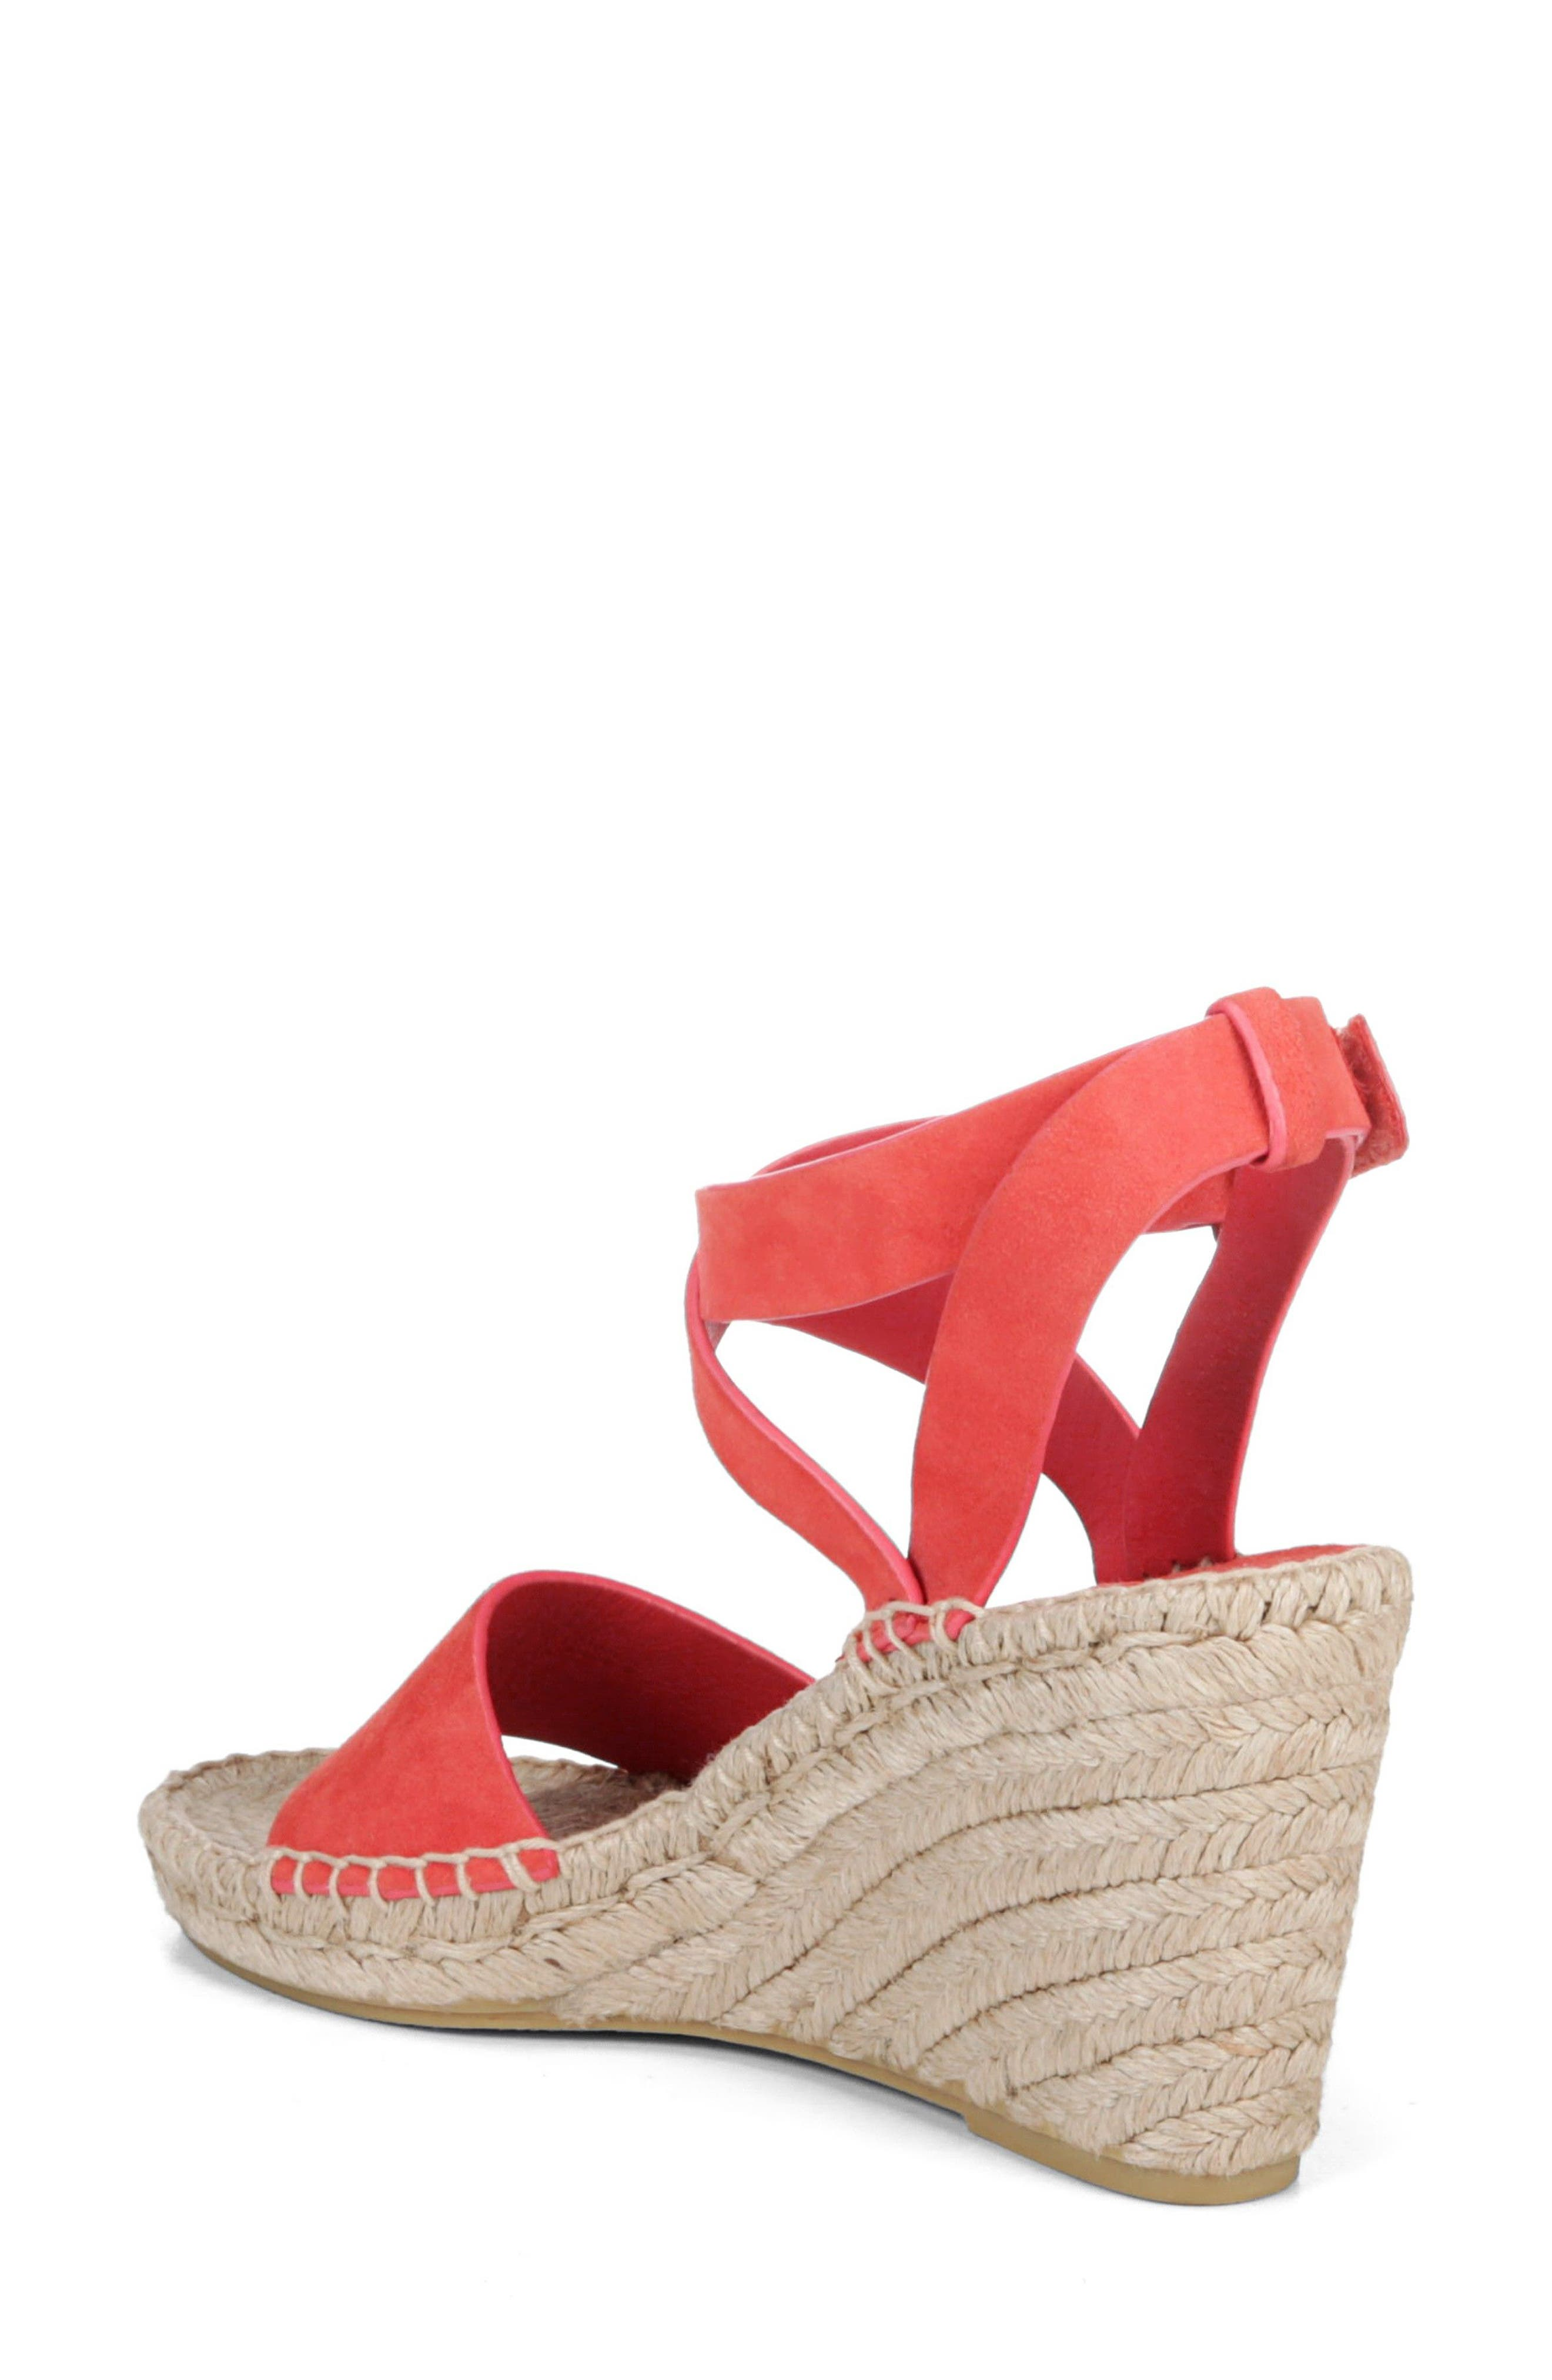 Nevada Espadrille Wedge Sandal,                             Alternate thumbnail 2, color,                             Poppy Red Suede